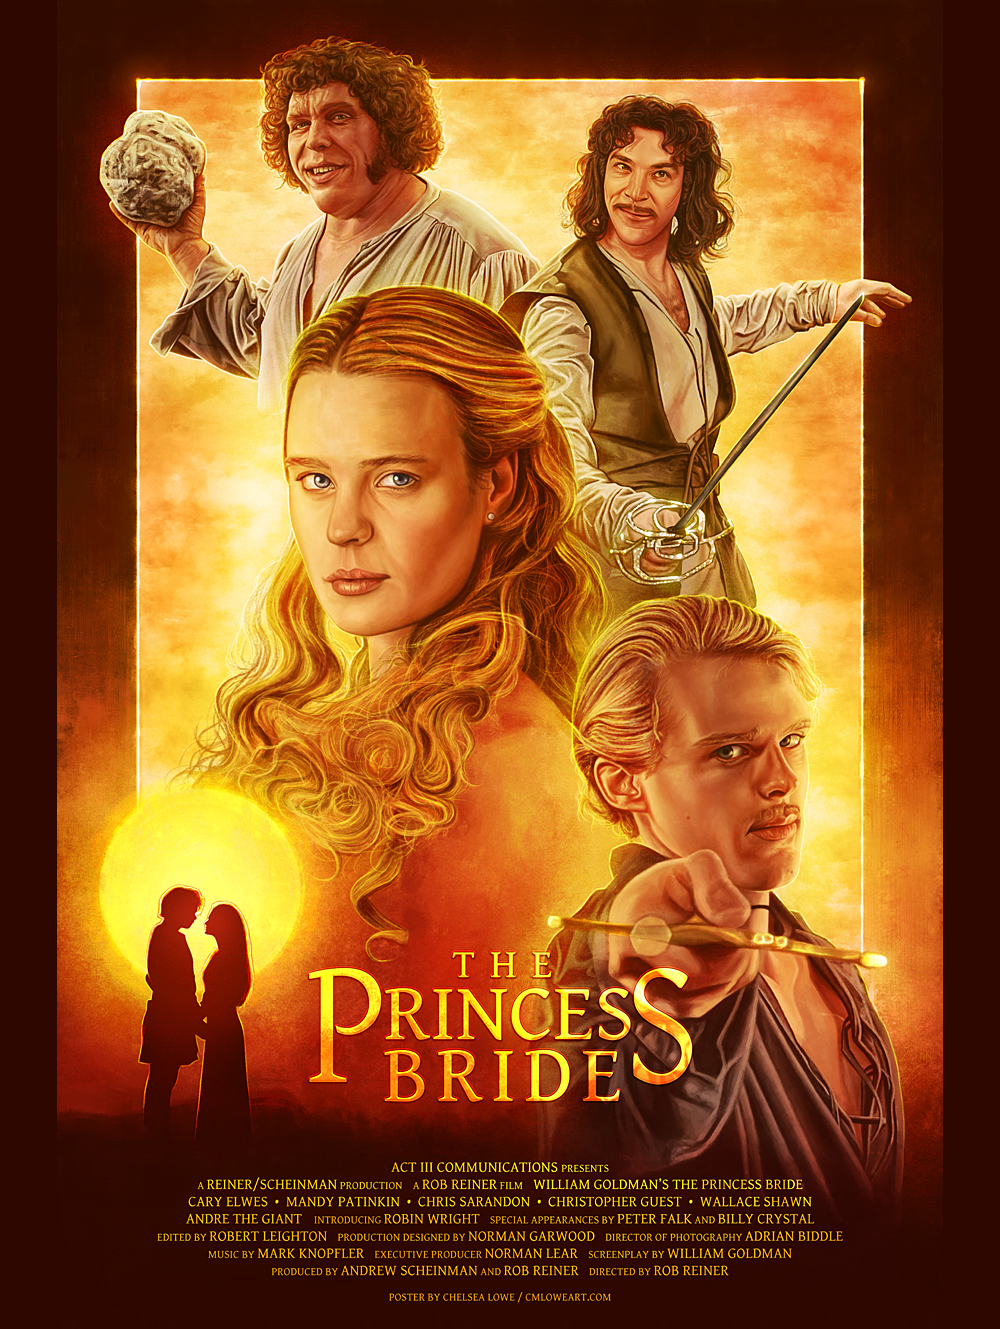 18 x 24 POSTER - The Princess Bride sold by Chelsea Lowe Illustration on  Storenvy